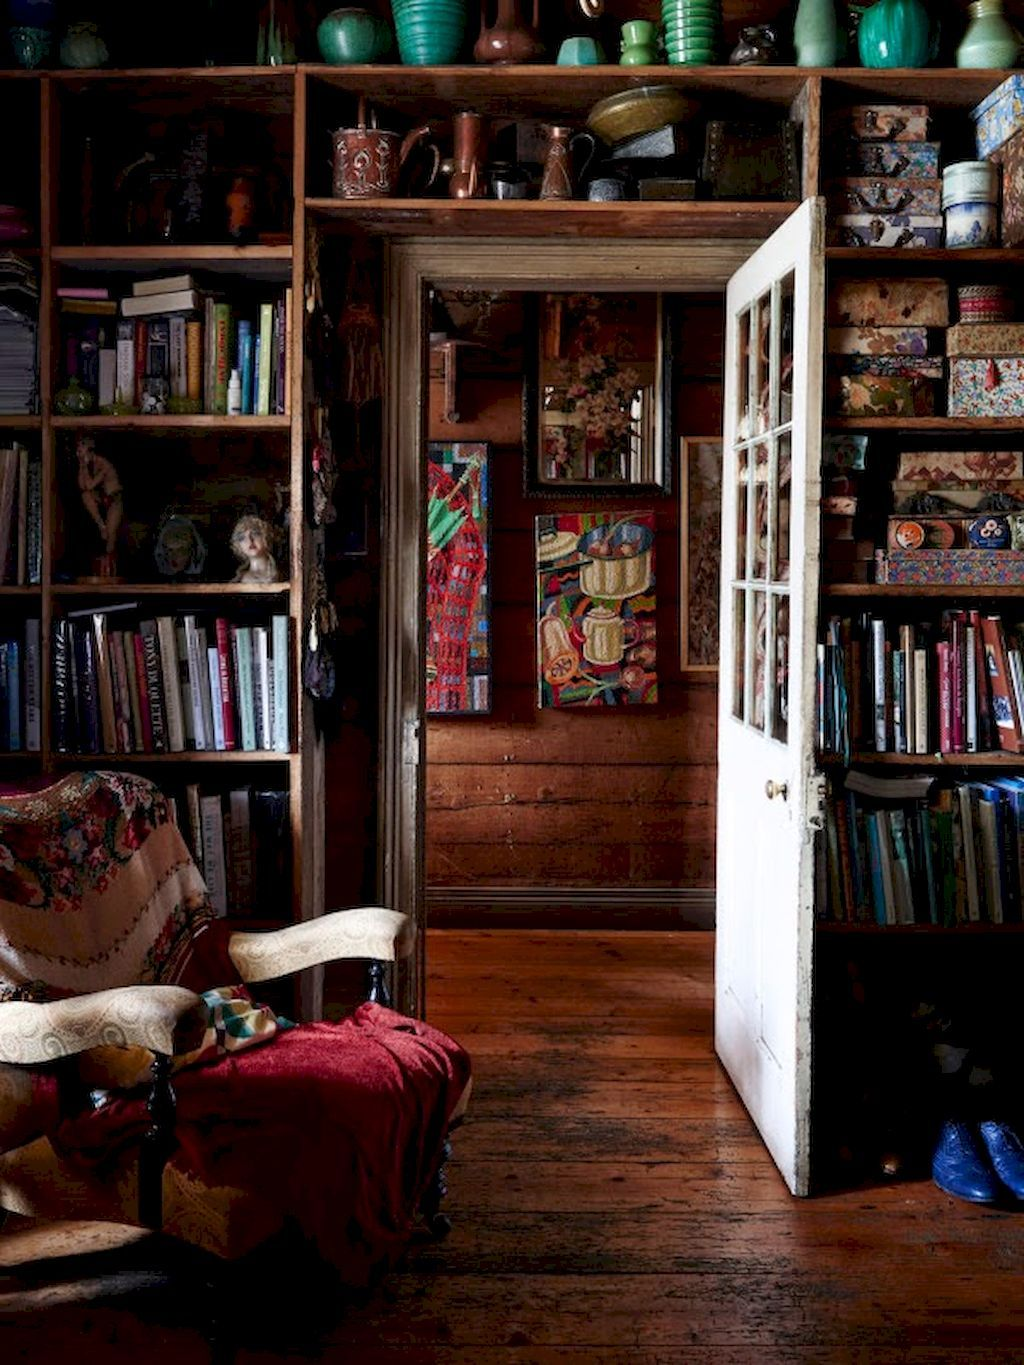 Amazing Home Libraries: 60 Amazing Library Room Design Ideas With Eclectic Decor